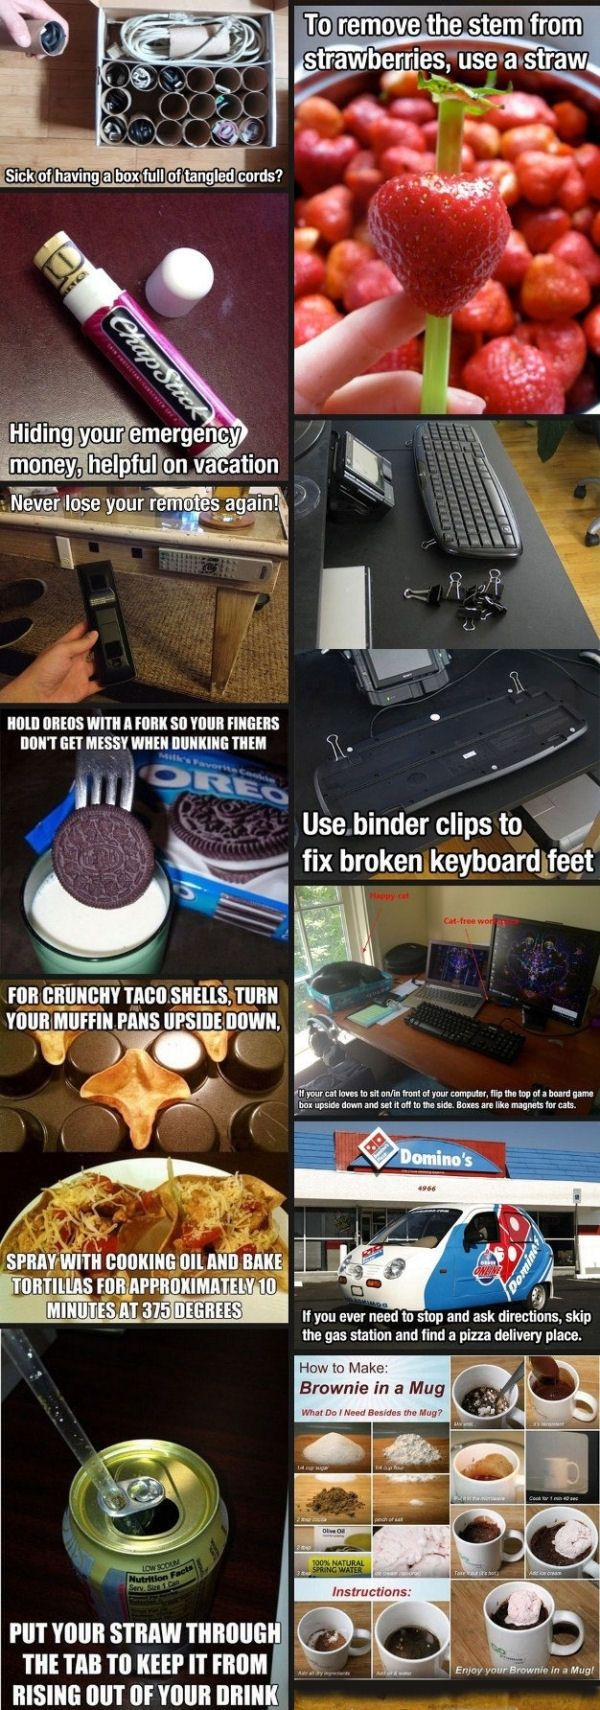 Diy life hacks part 3 pictures photos and images for Cool household hacks